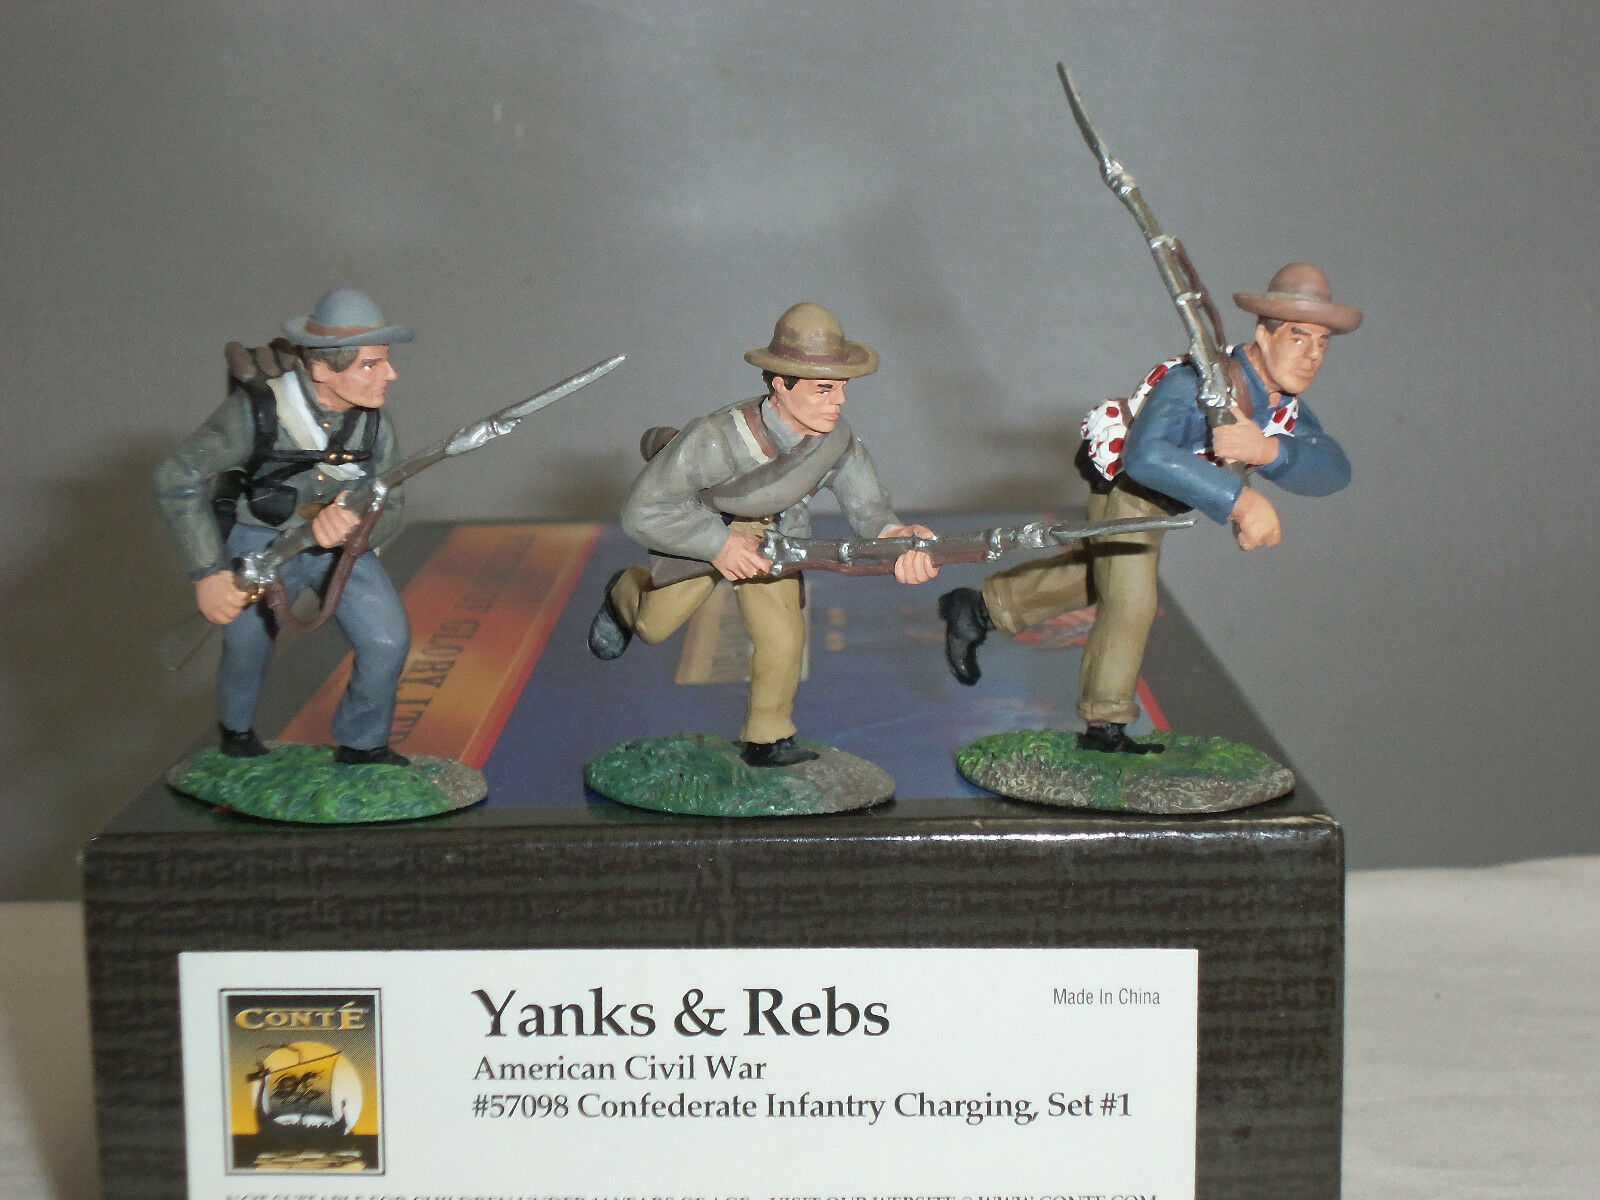 CONTE 57098 CONFEDERATE INFANTRY CHARGING AMERICAN CIVIL WAR TOY SOLDIER SET 1